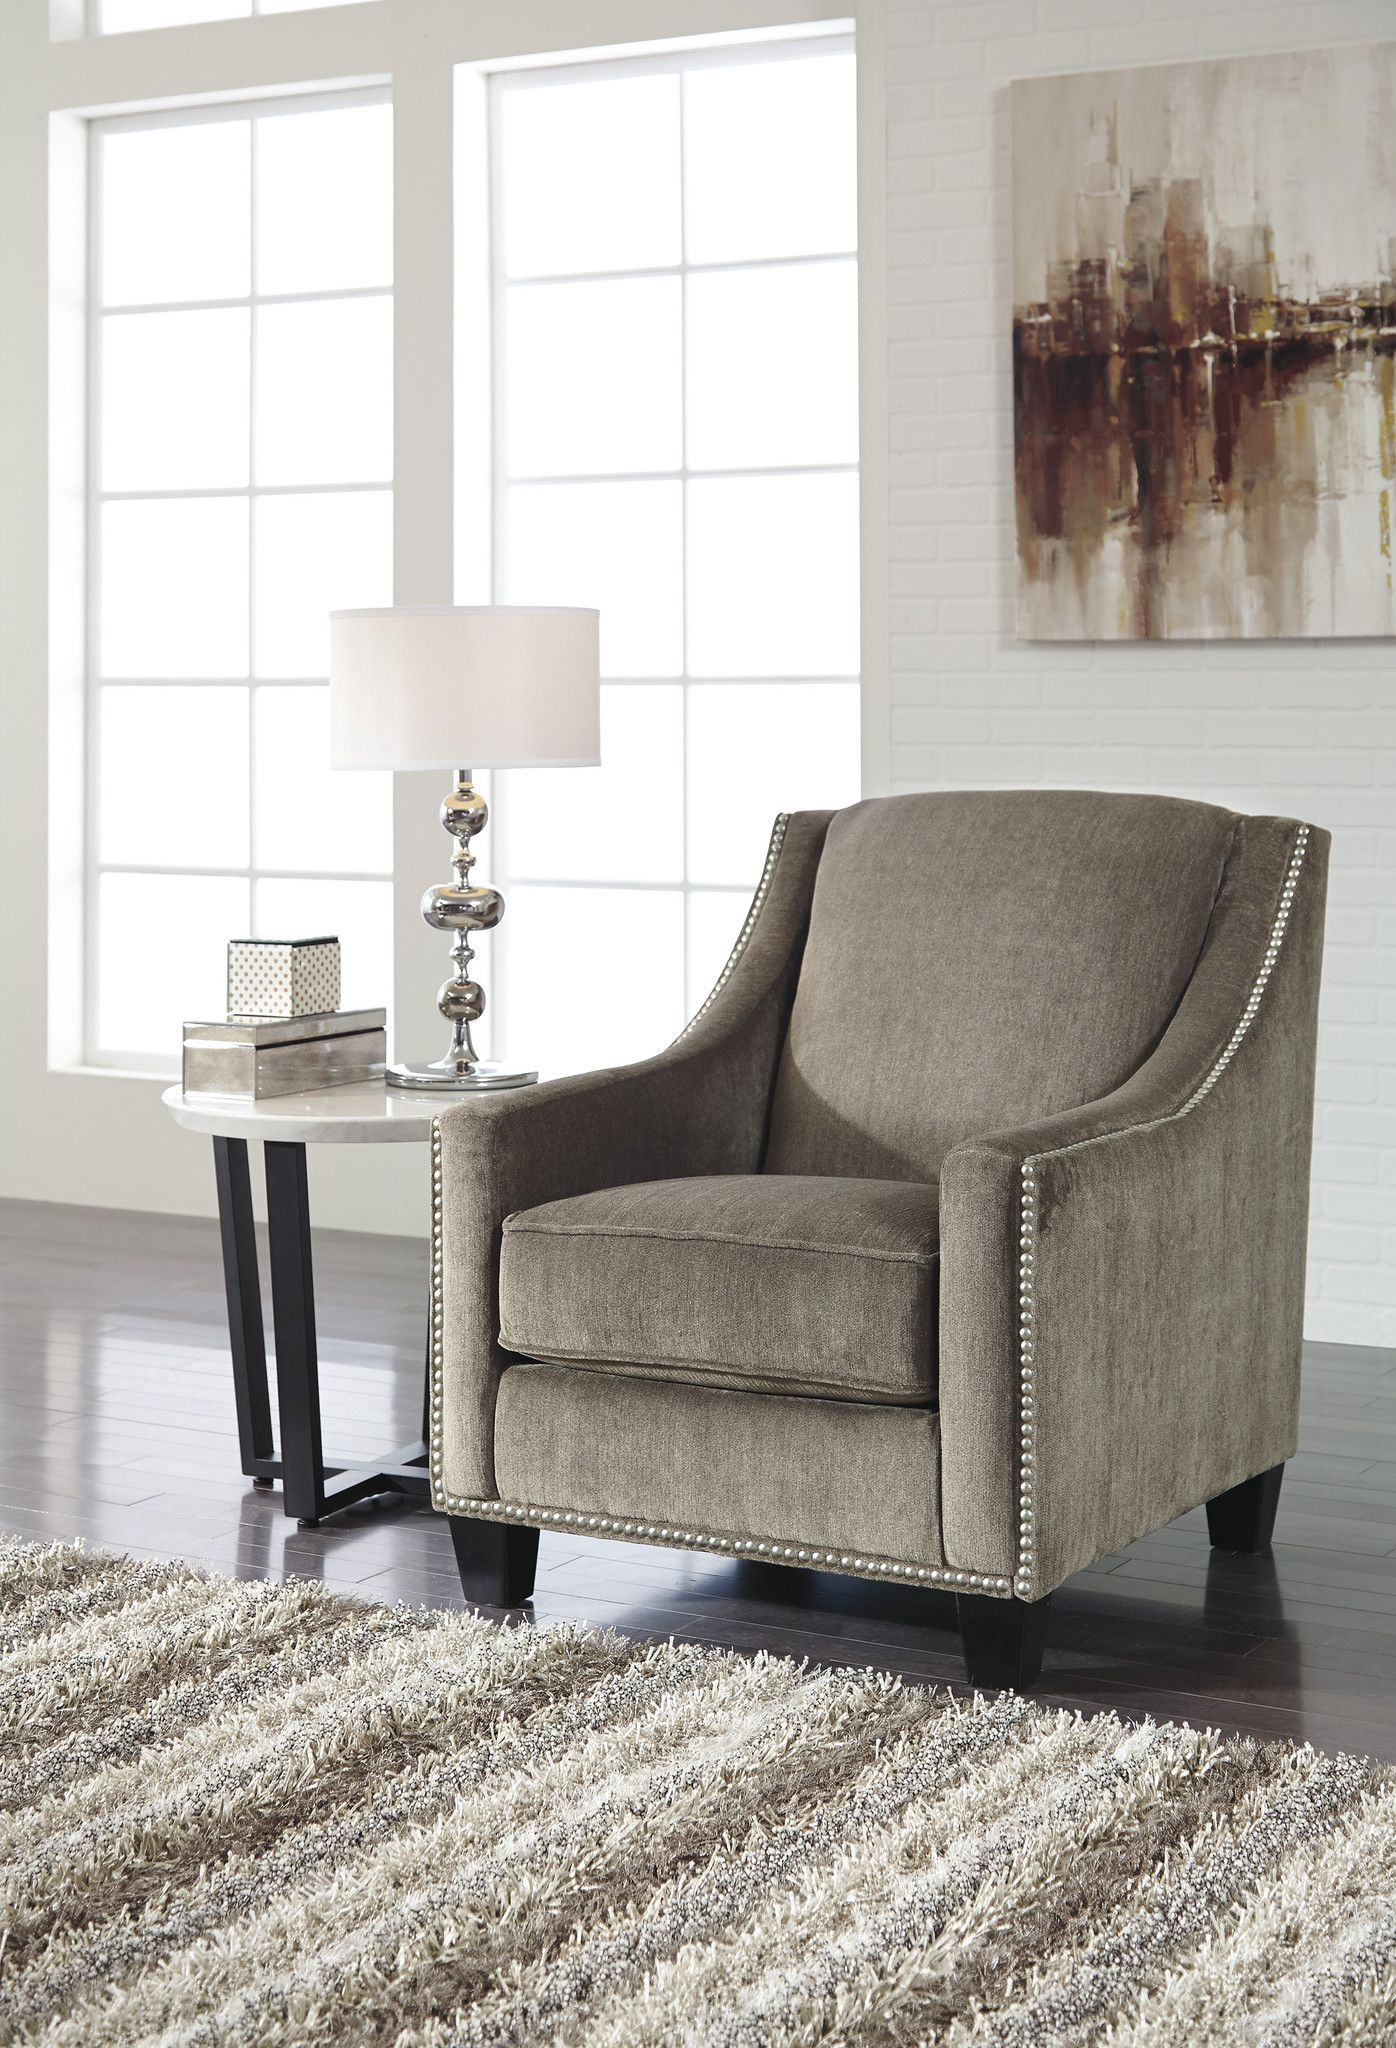 Donnell Accent Chair | Living rooms, Room and Bedrooms